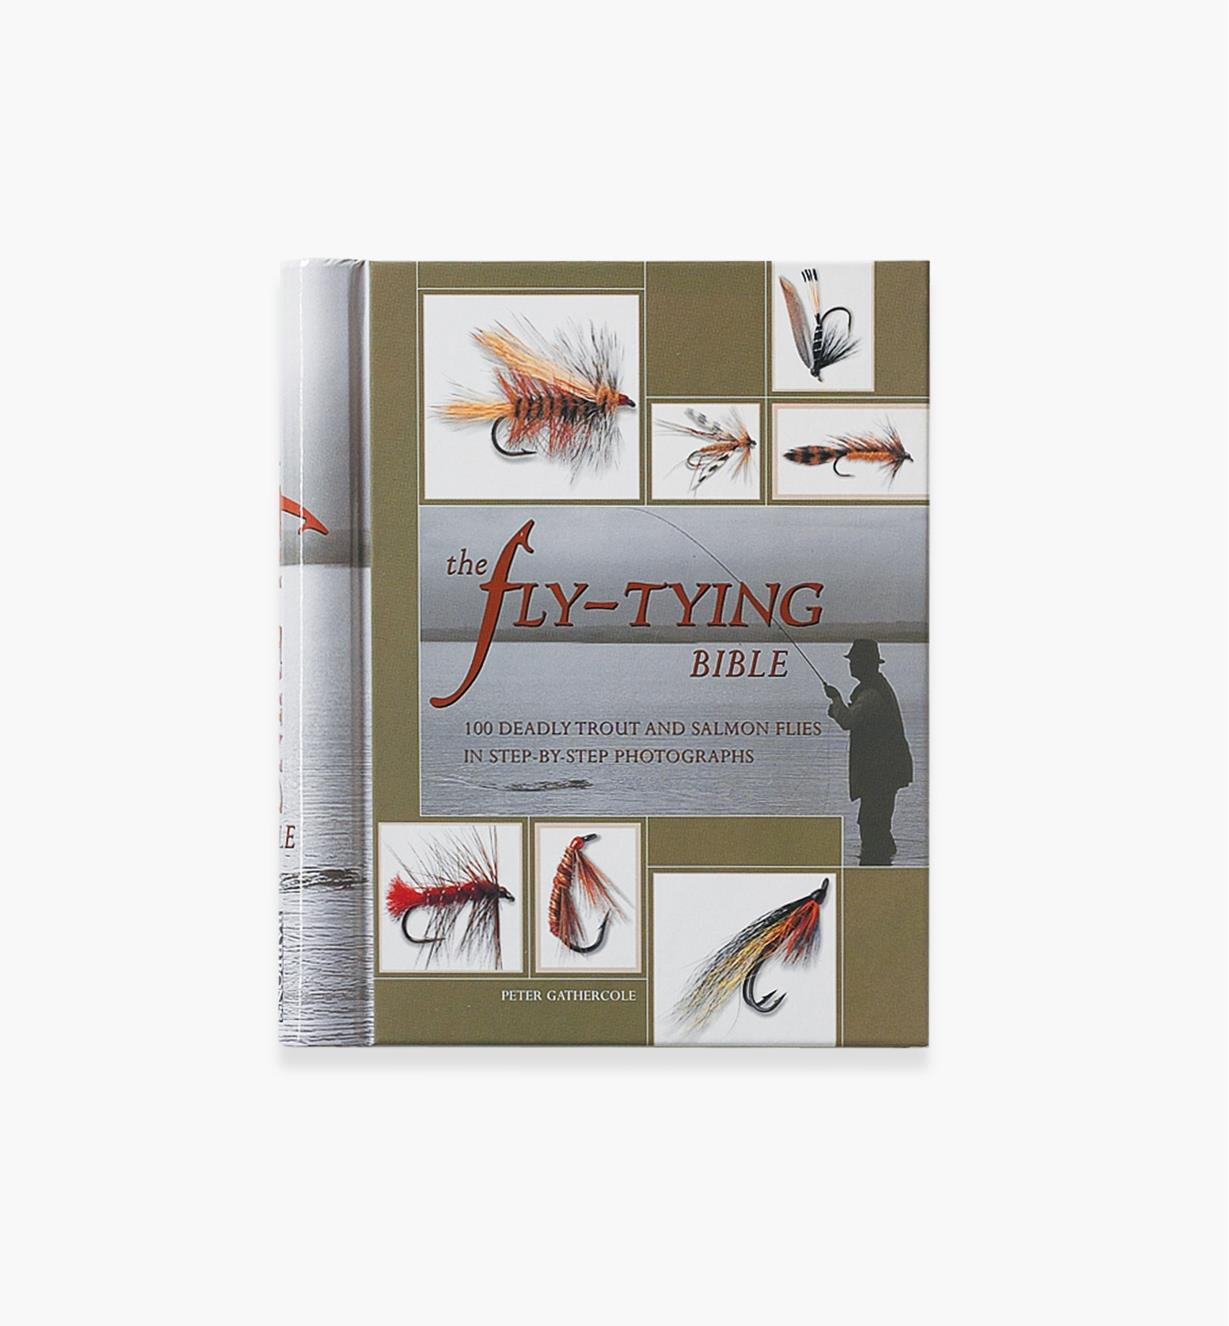 LA466 - The Fly-Tying Bible